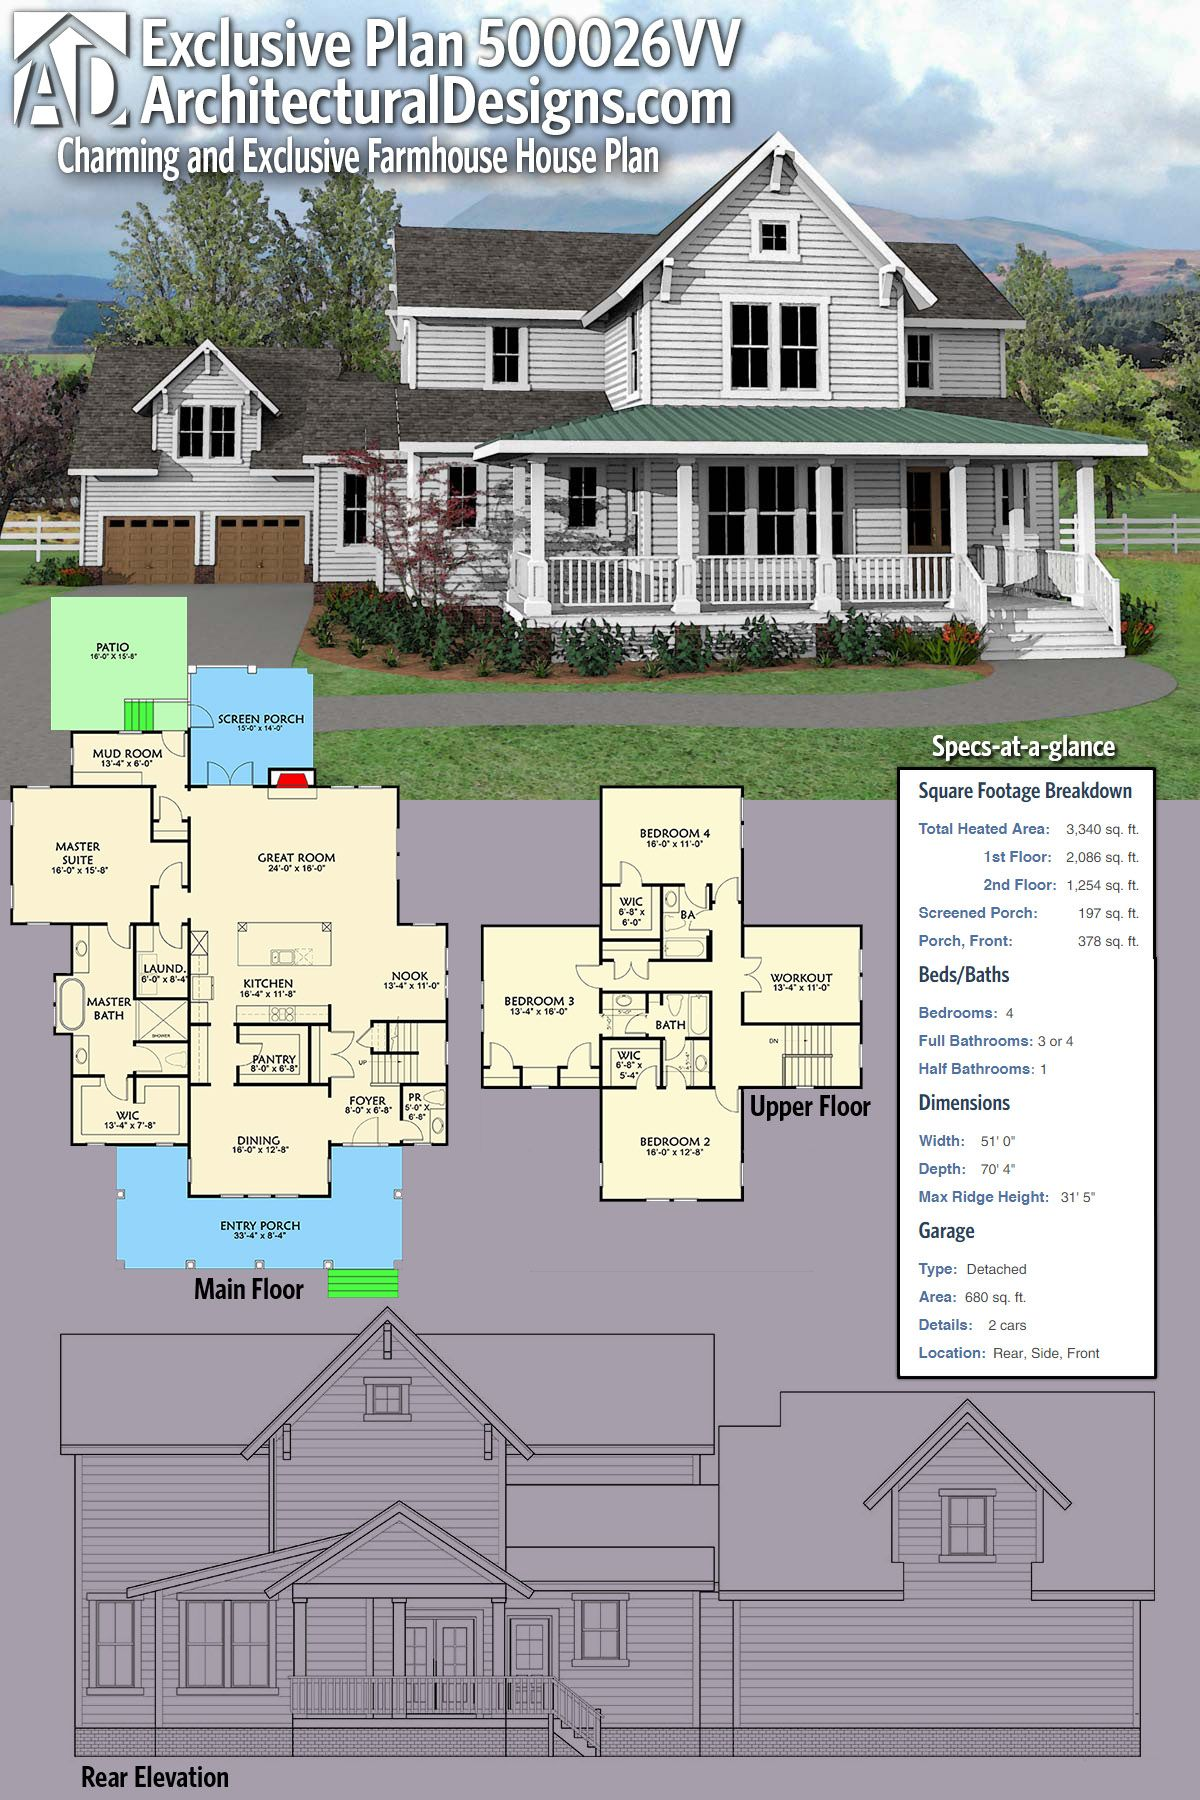 Plan 500026vv Charming And Exclusive Farmhouse House Plan House Plans Farmhouse Farmhouse House New House Plans